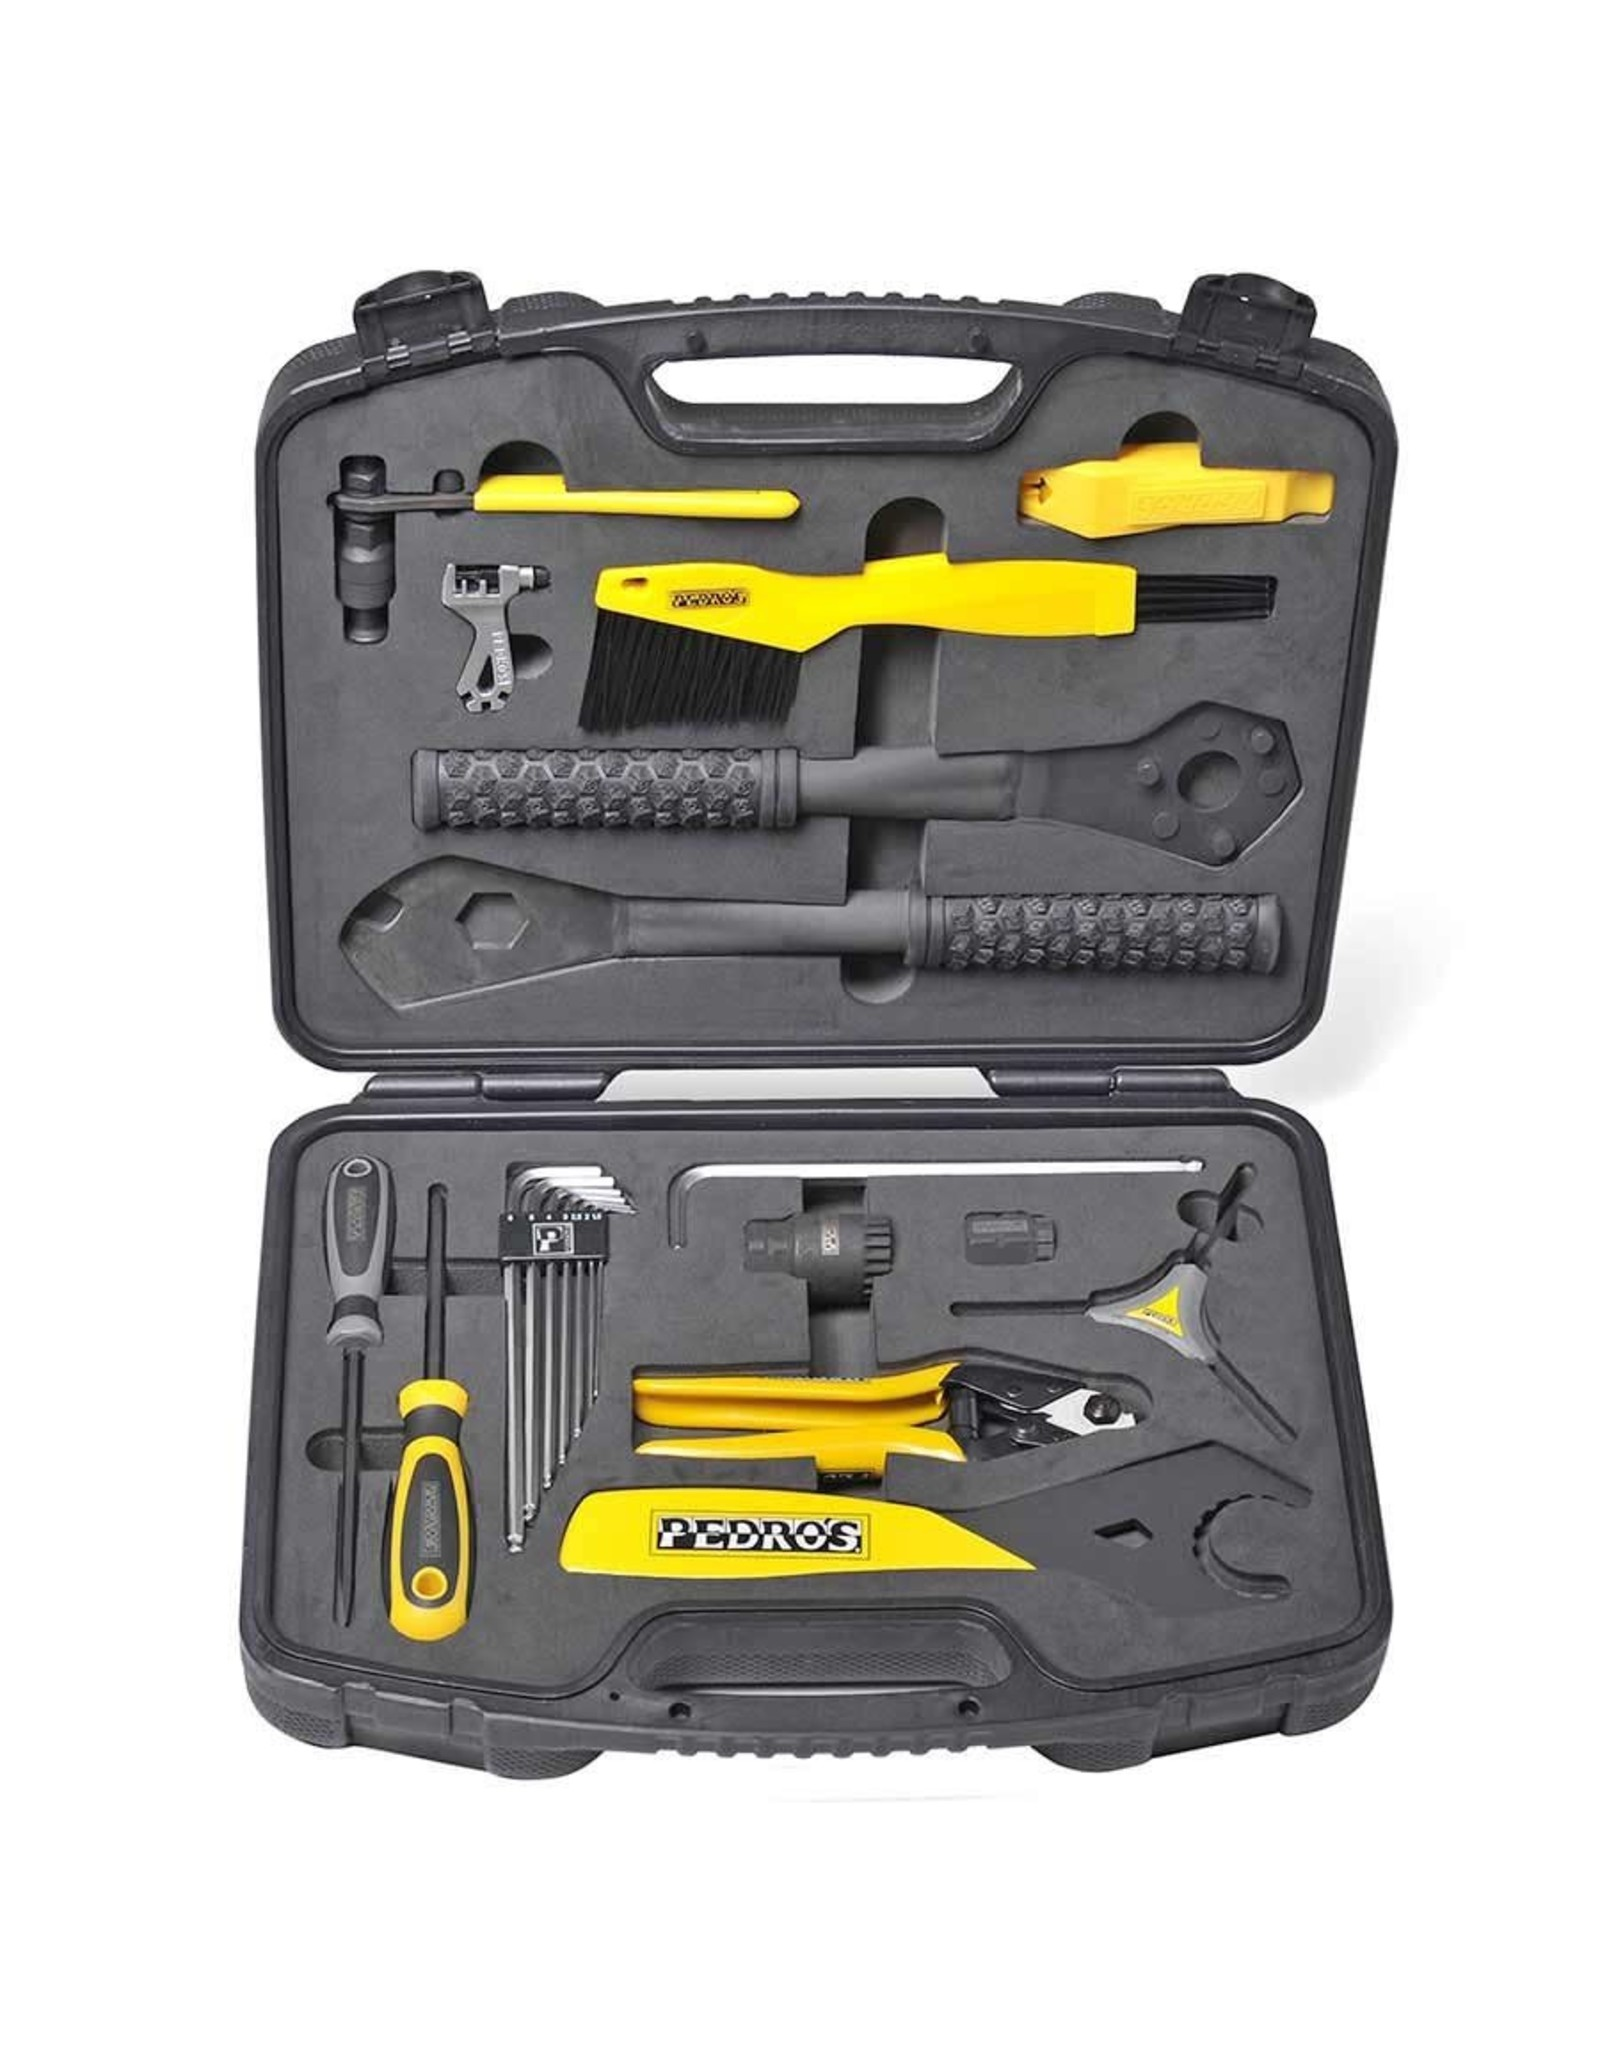 Pedros PEDROS, Apprentice Toolkit, 22 Piece